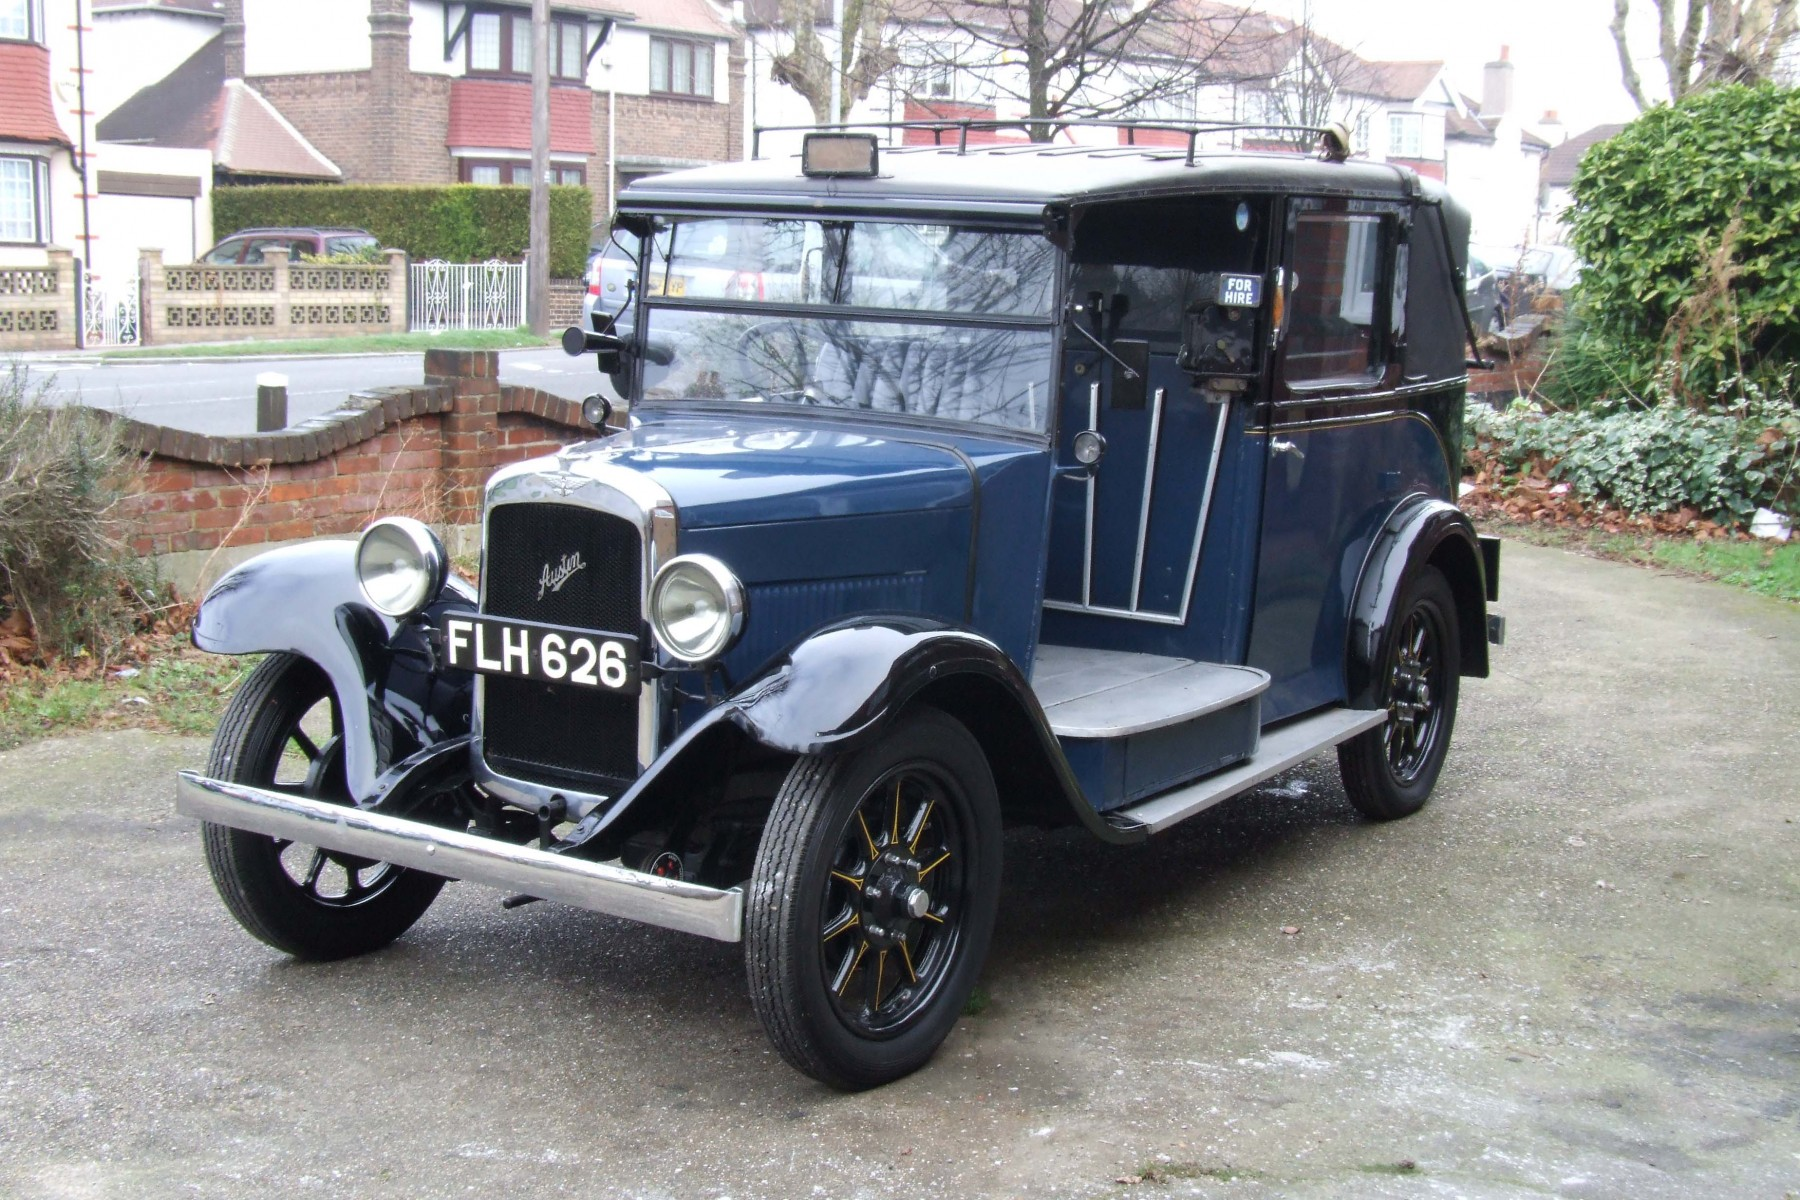 Probably the finest example of a Strachan-bodied Austin 12/4 Low Loader